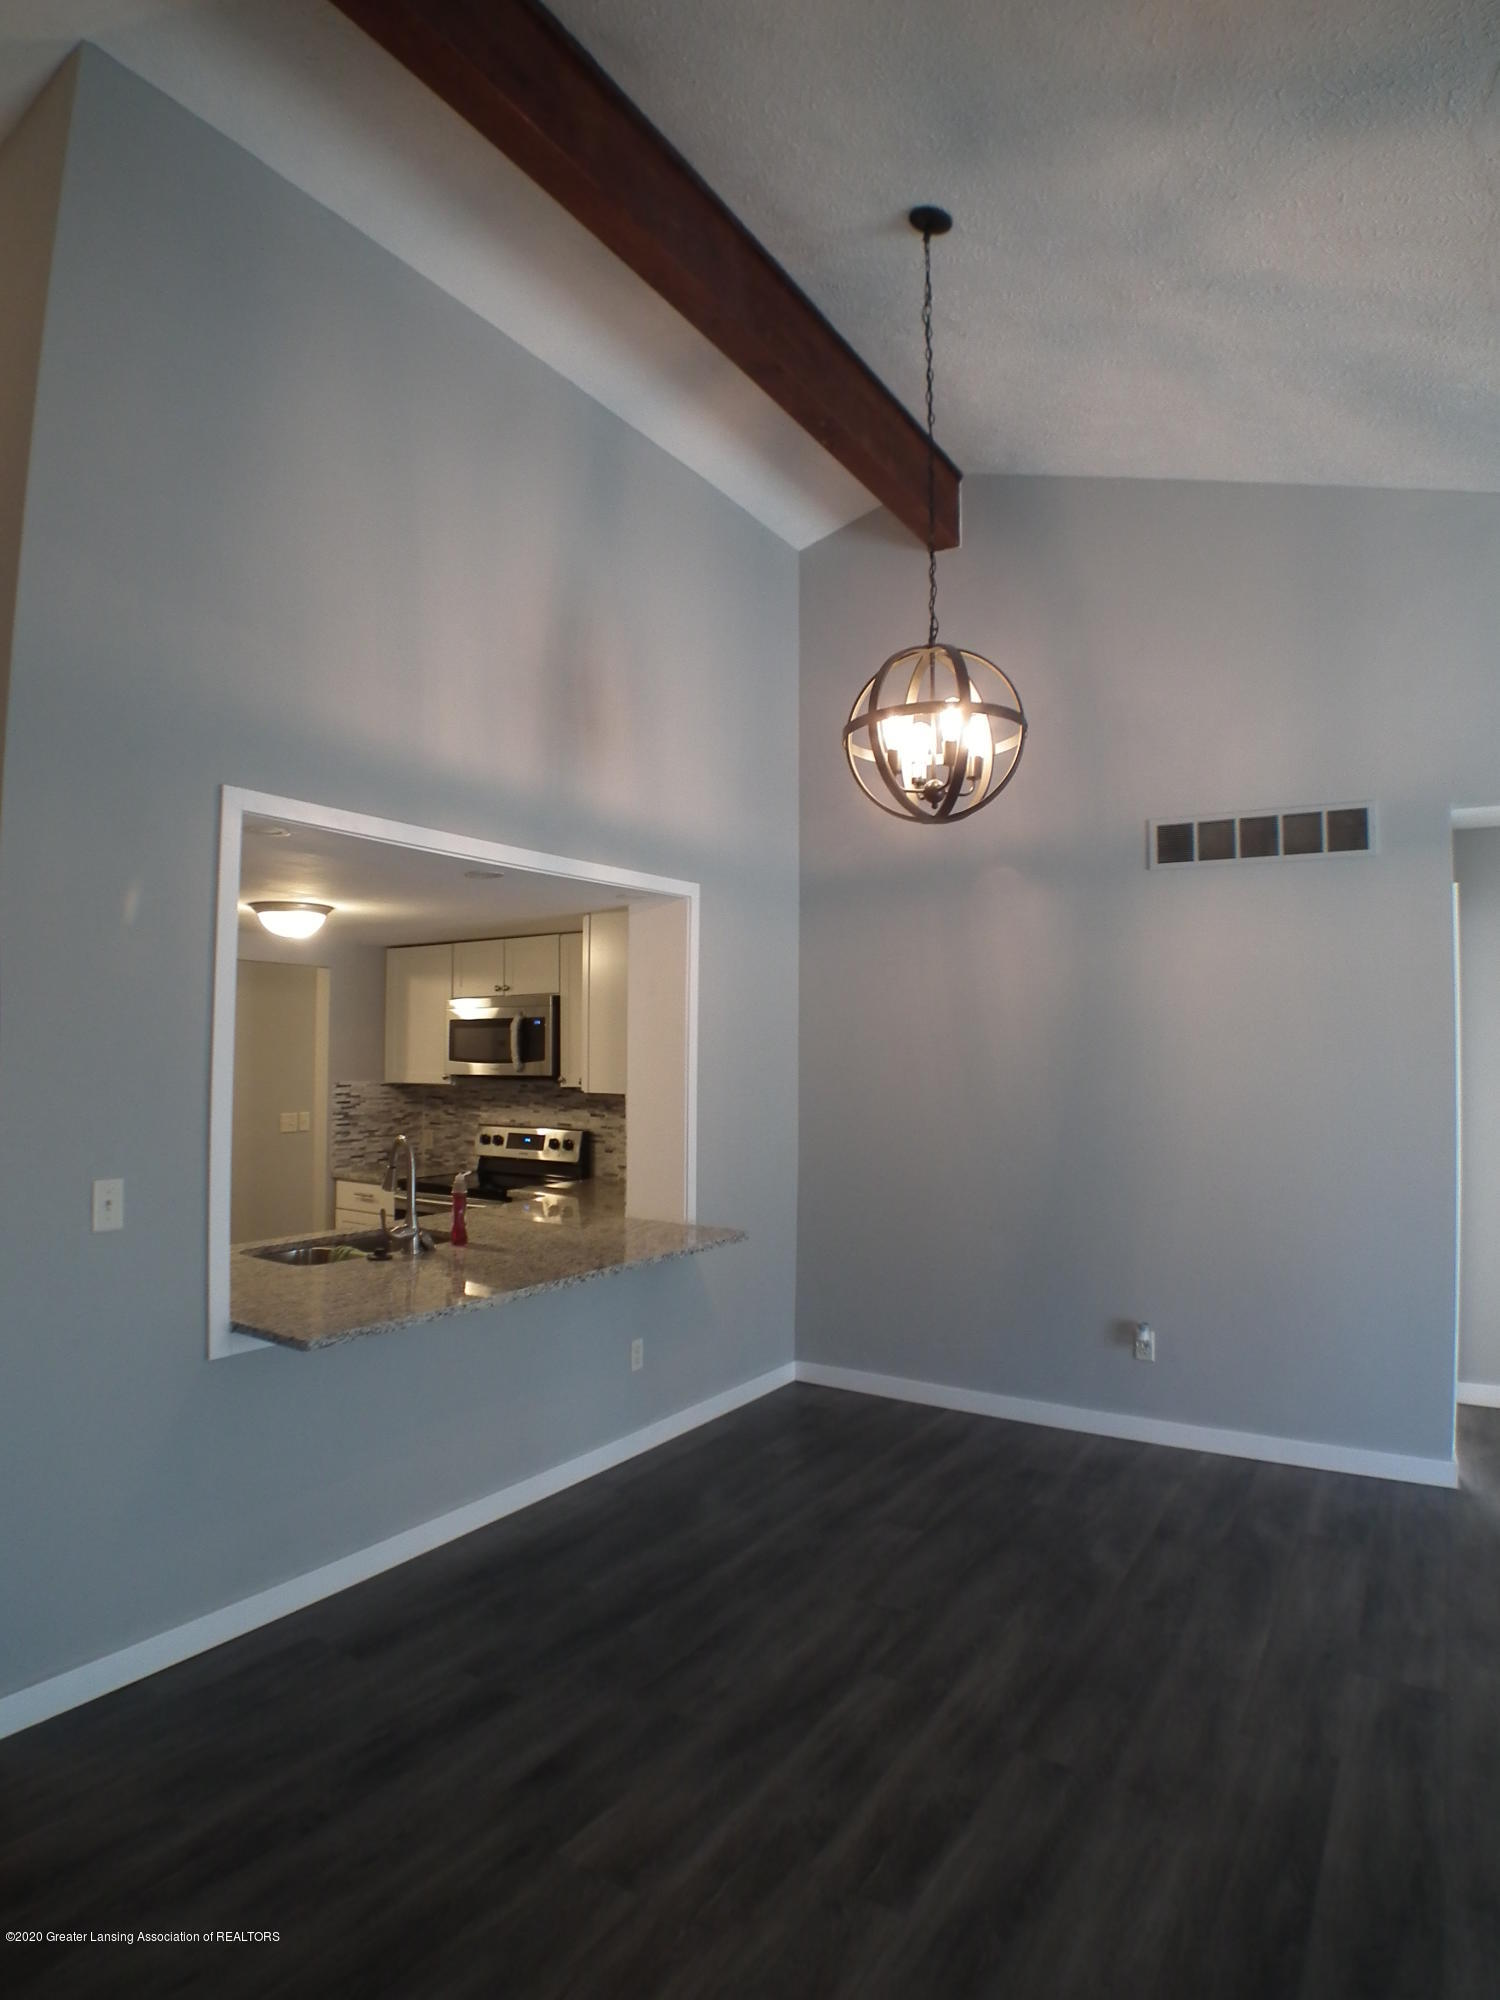 530 Stoll Rd - Dining room a, 530 - Copy - 16